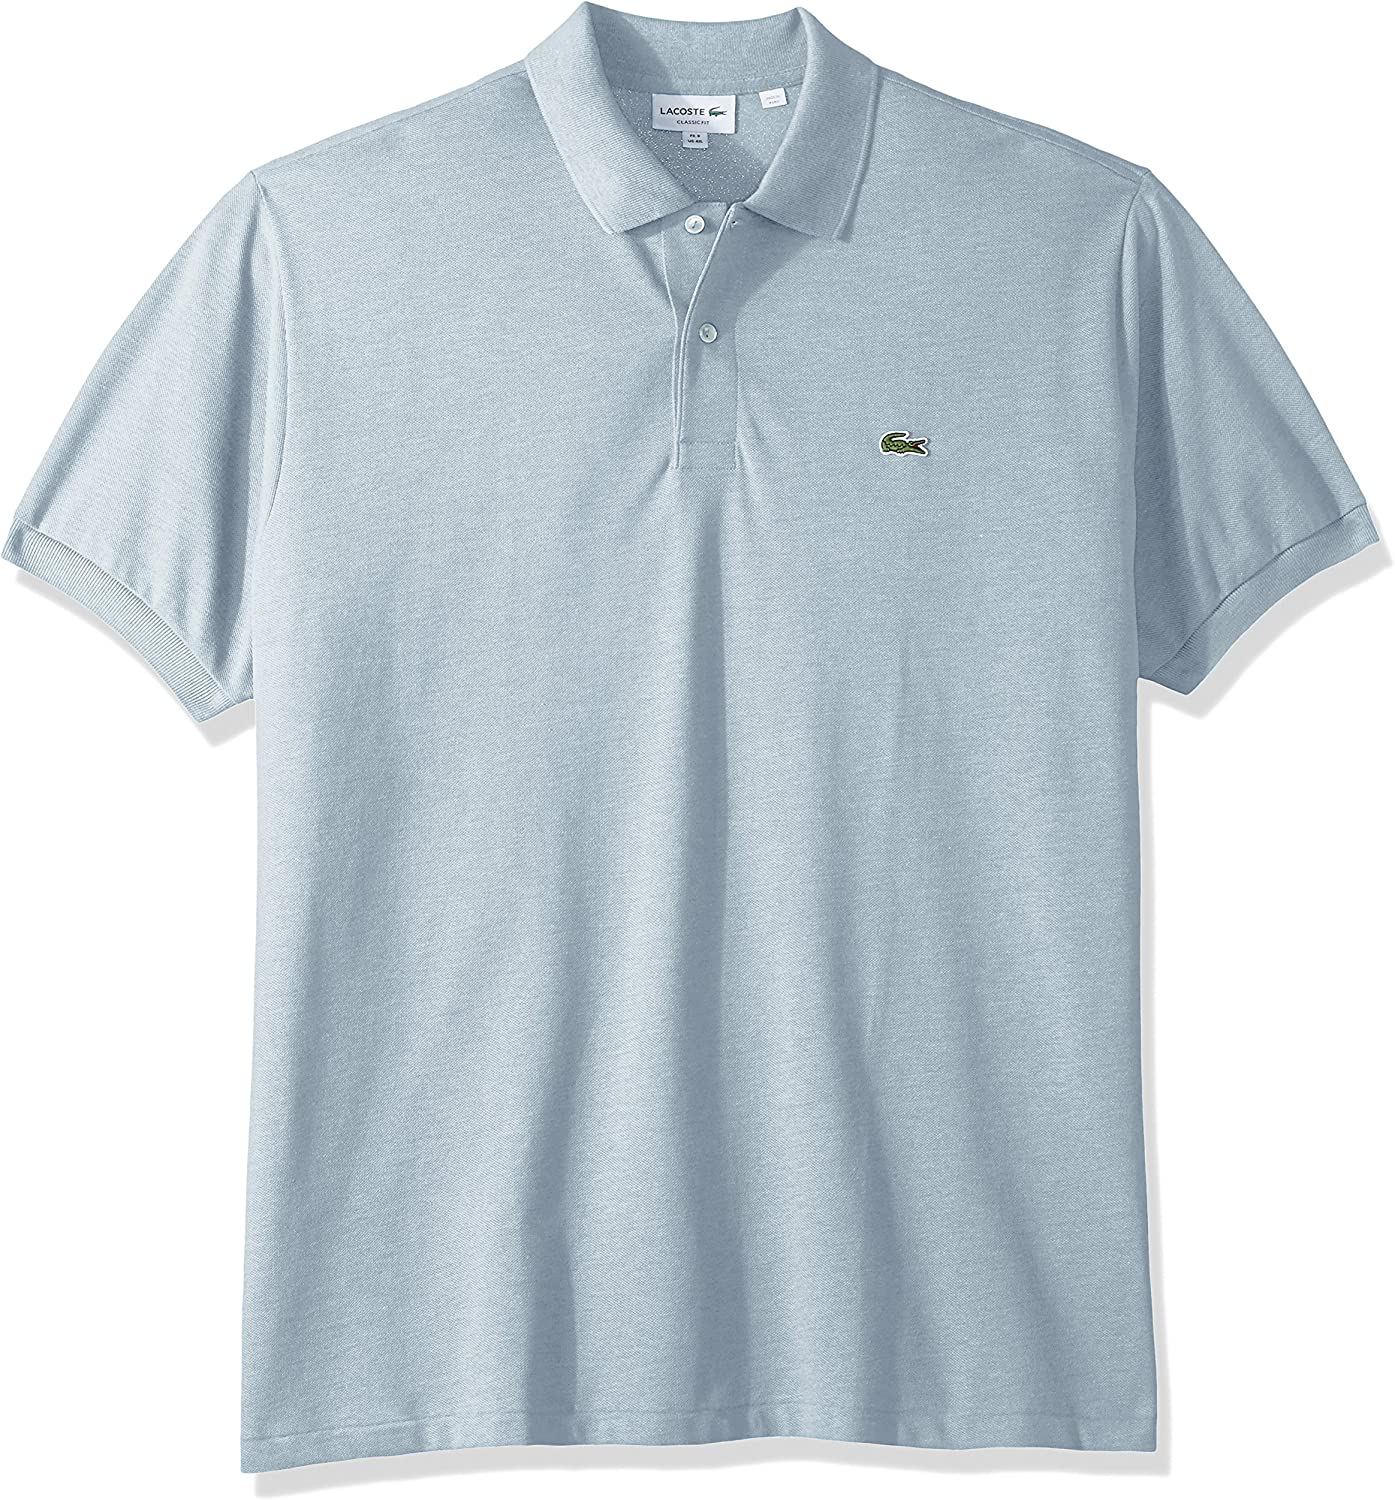 Lacoste Mens Short Sleeve Pique Classic Fit Chine Polo Shirt L1264